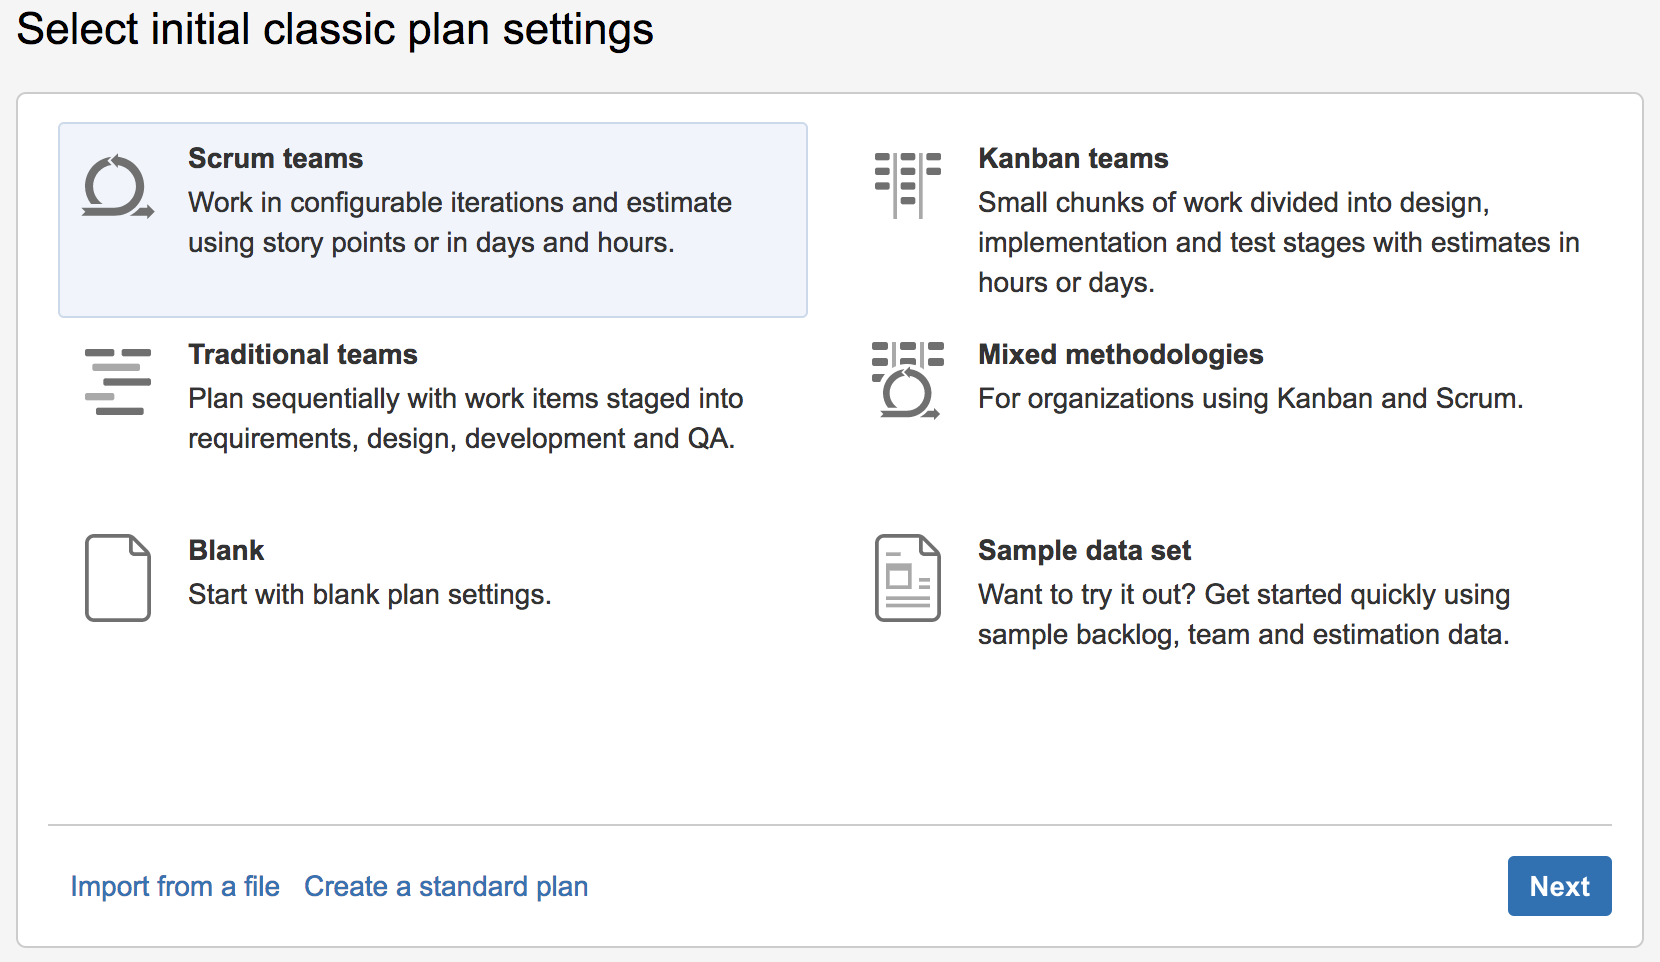 Select The Classic Plan Template That Suits How Your Team Works And Then Click Next